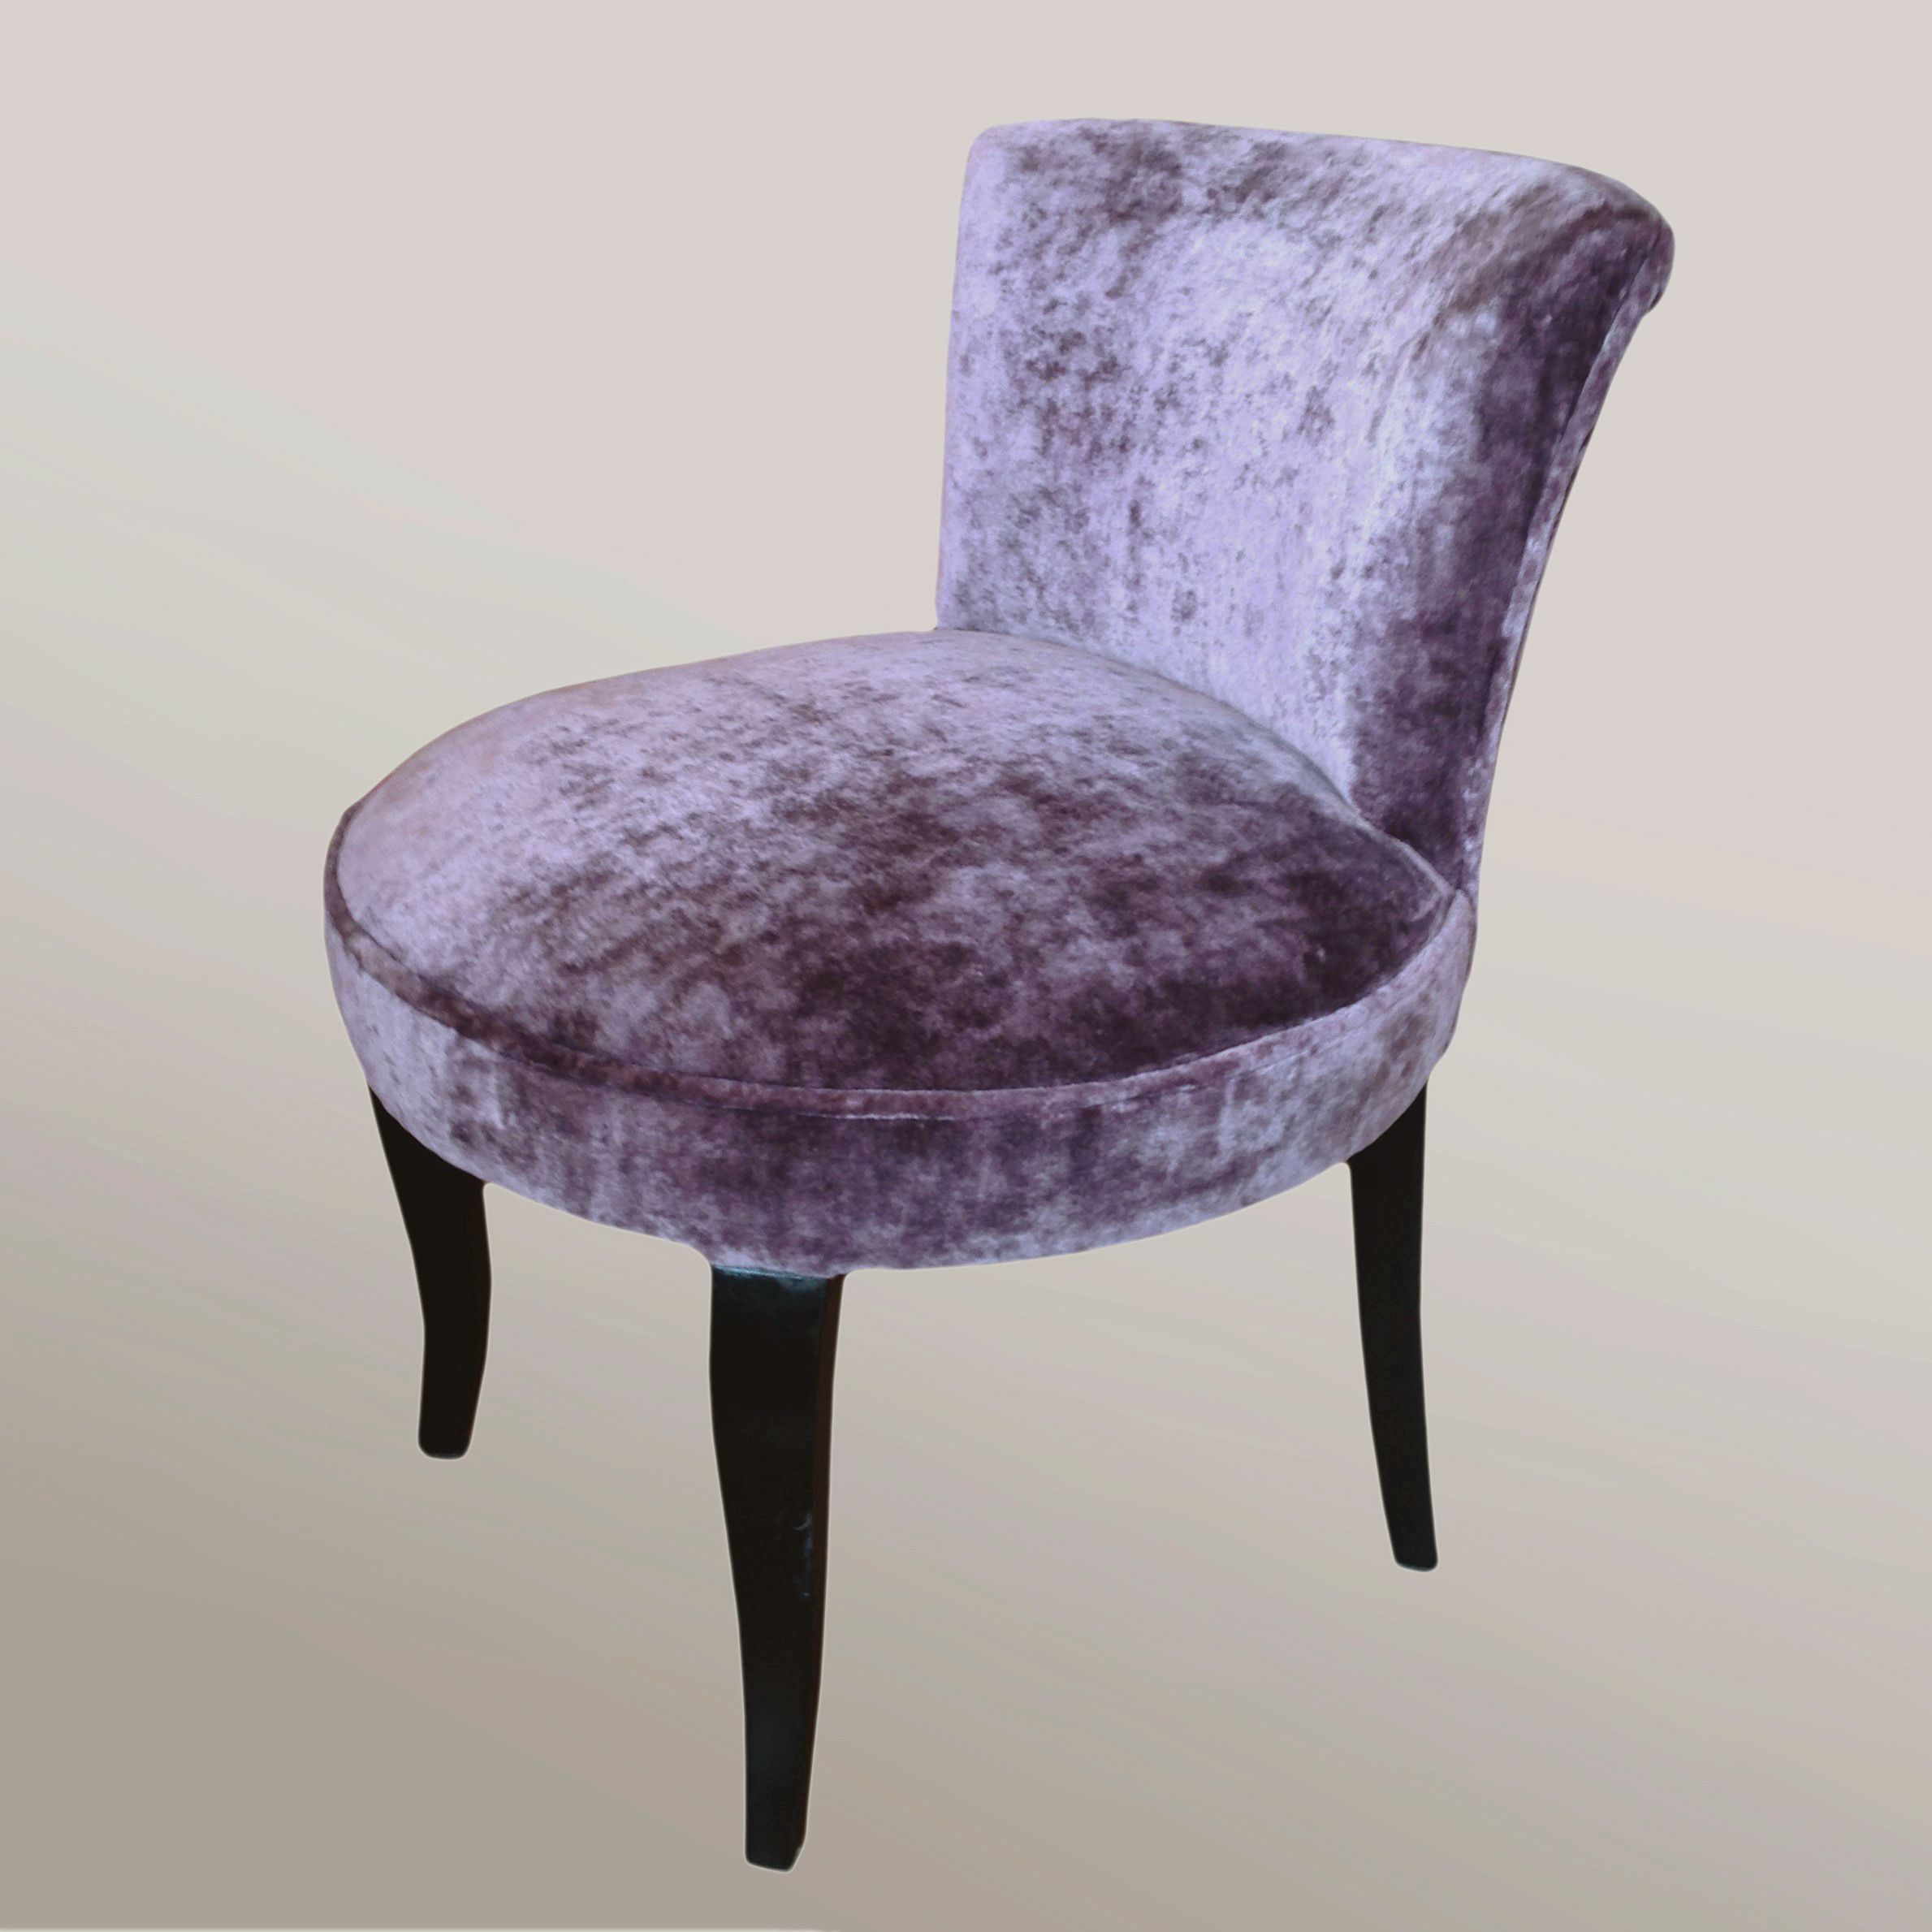 Valerie Wade Fs464 Upright Upholstered Seat 01